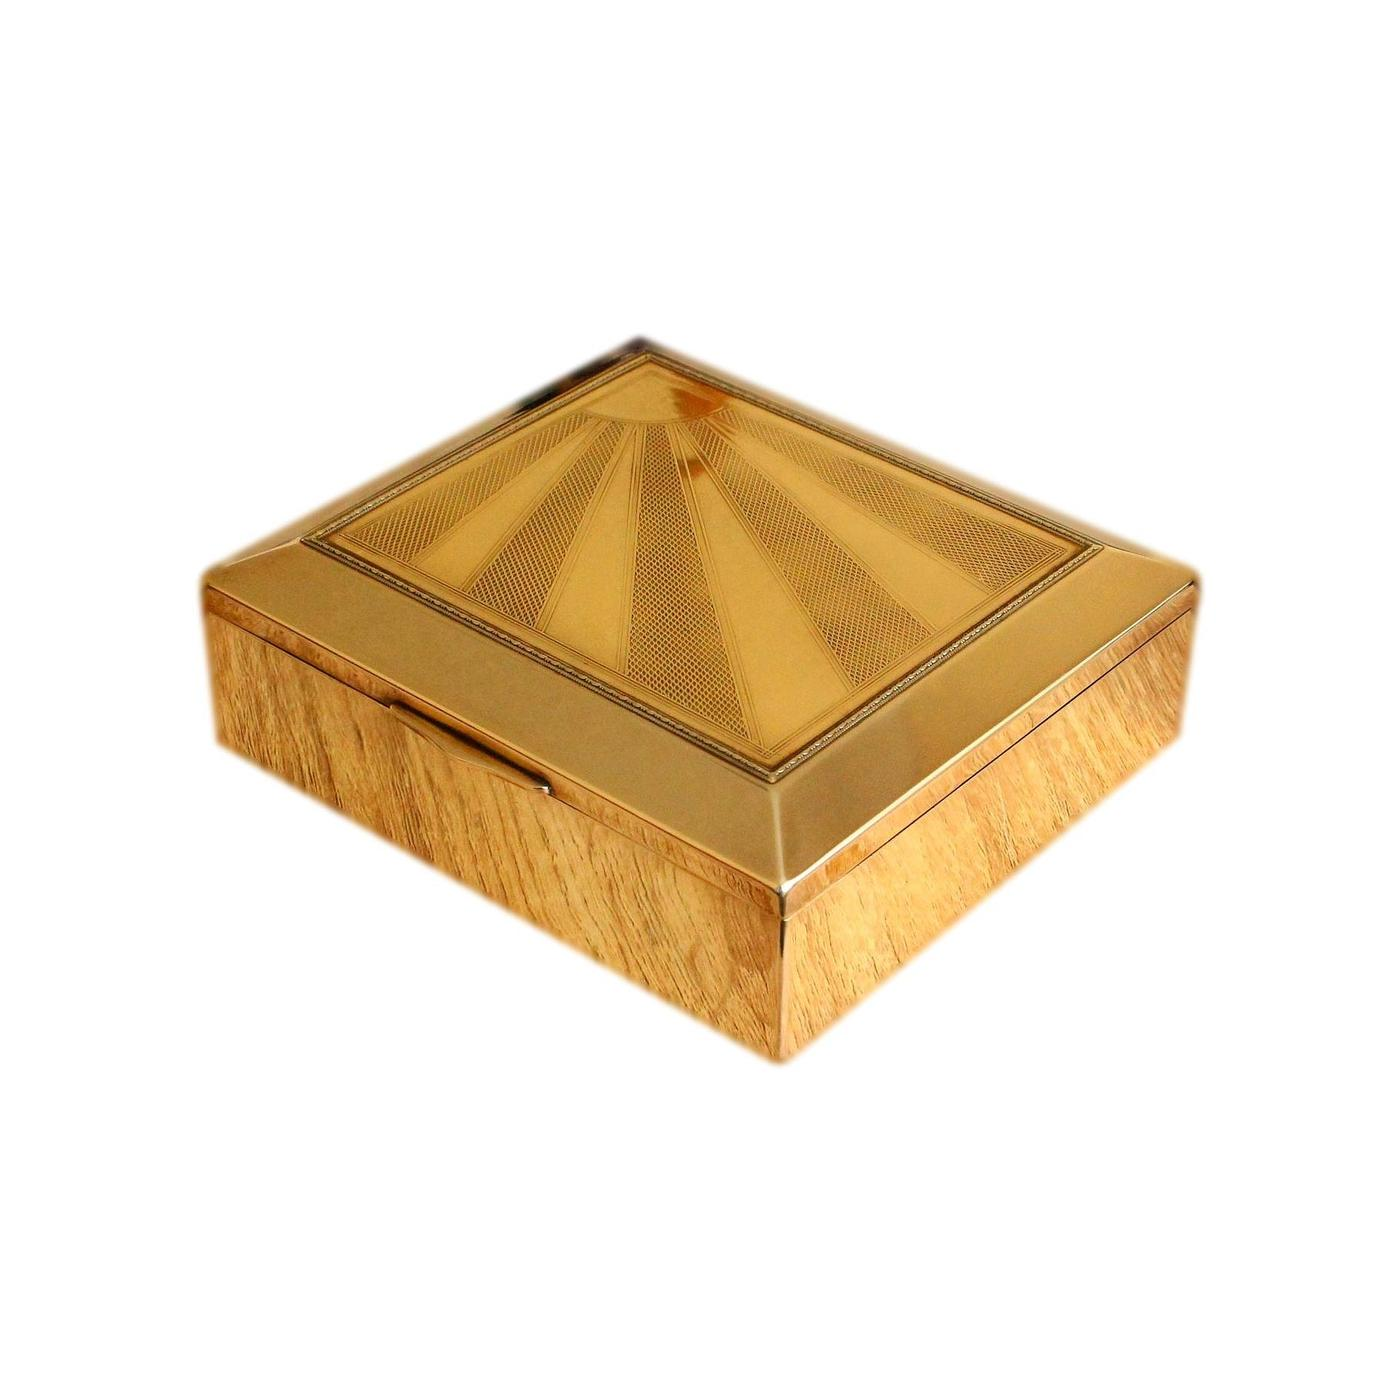 Solid Brass Art Deco Jewellery Box With Engraved Sunray Design